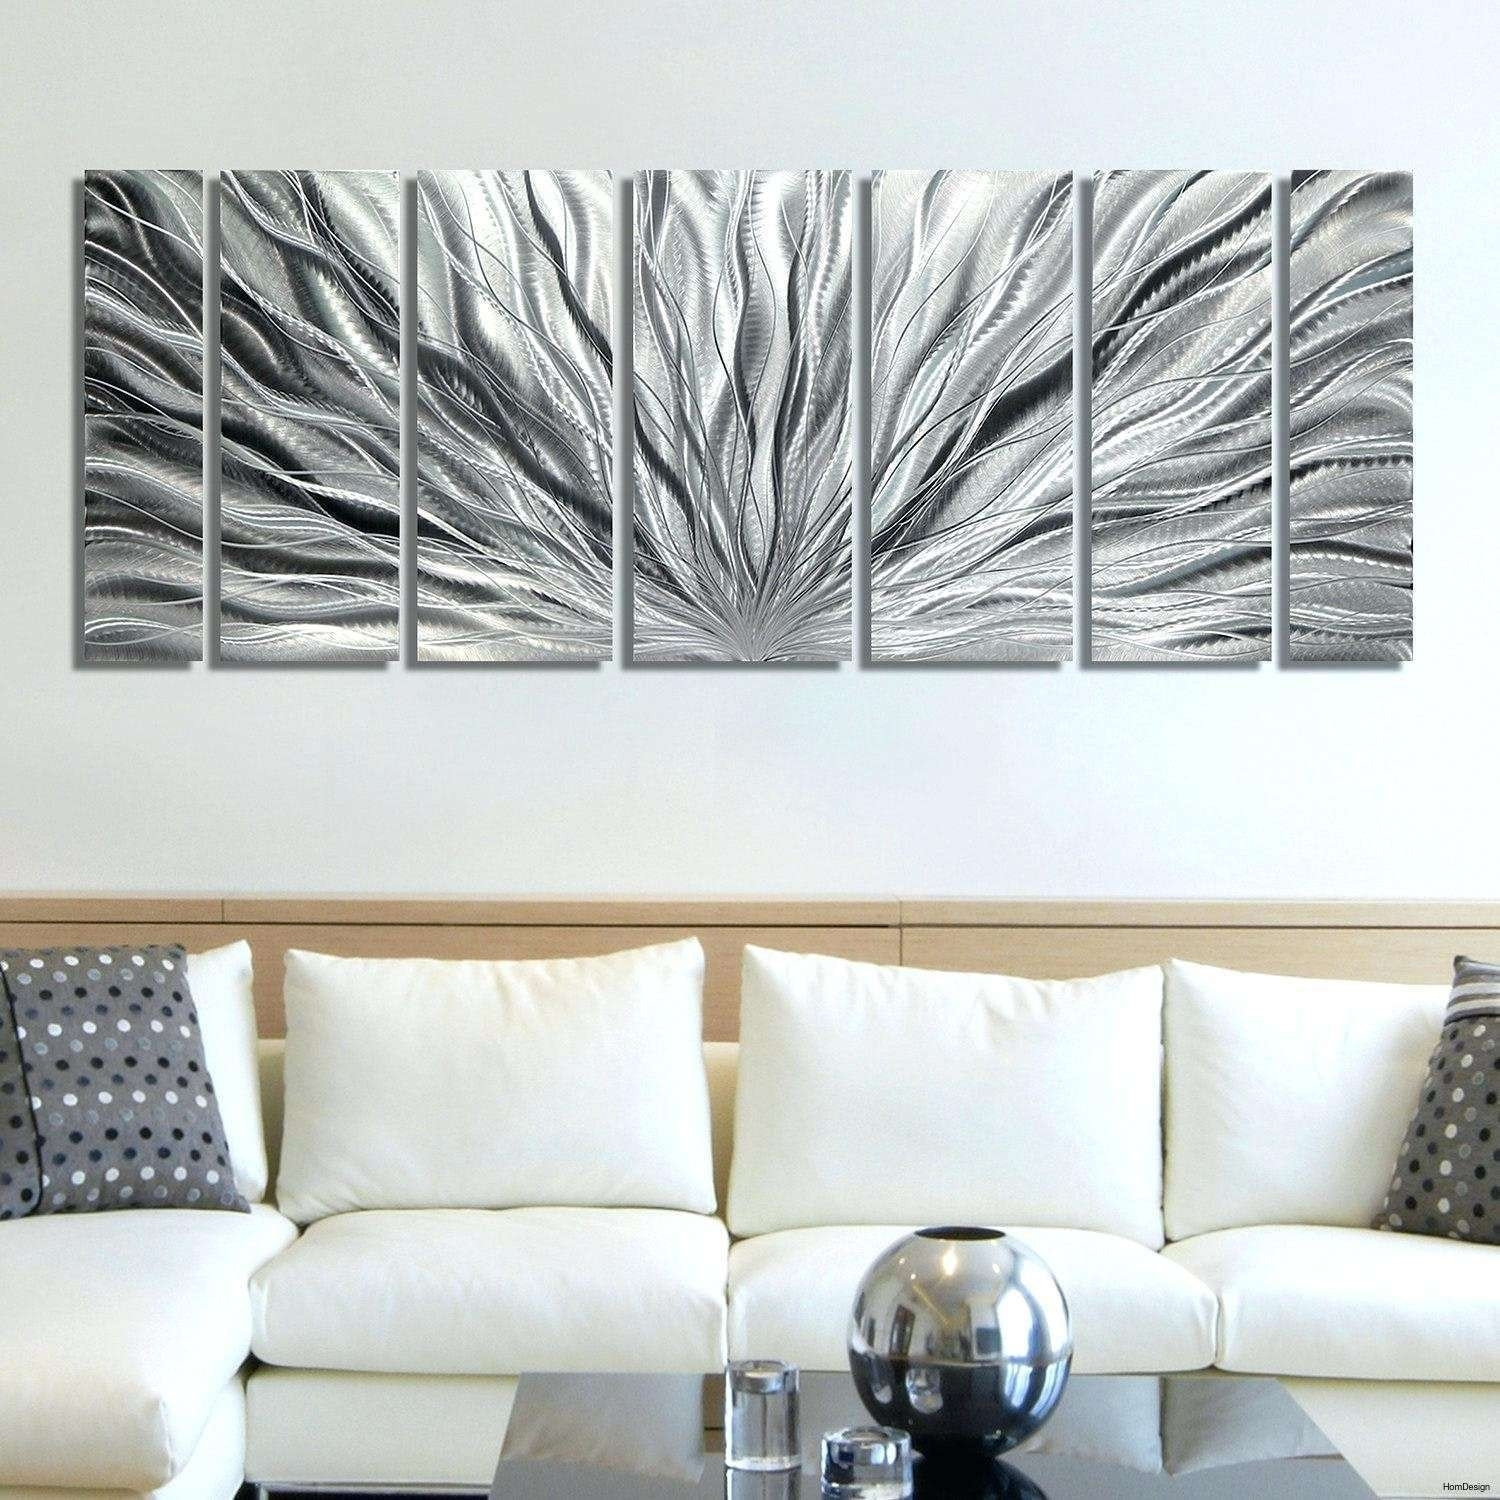 Wooden Wall Uk Lovely 32 Lovely Unusual Wall Art Uk – Suldoz Pertaining To Most Popular Unusual Wall Art (View 20 of 20)